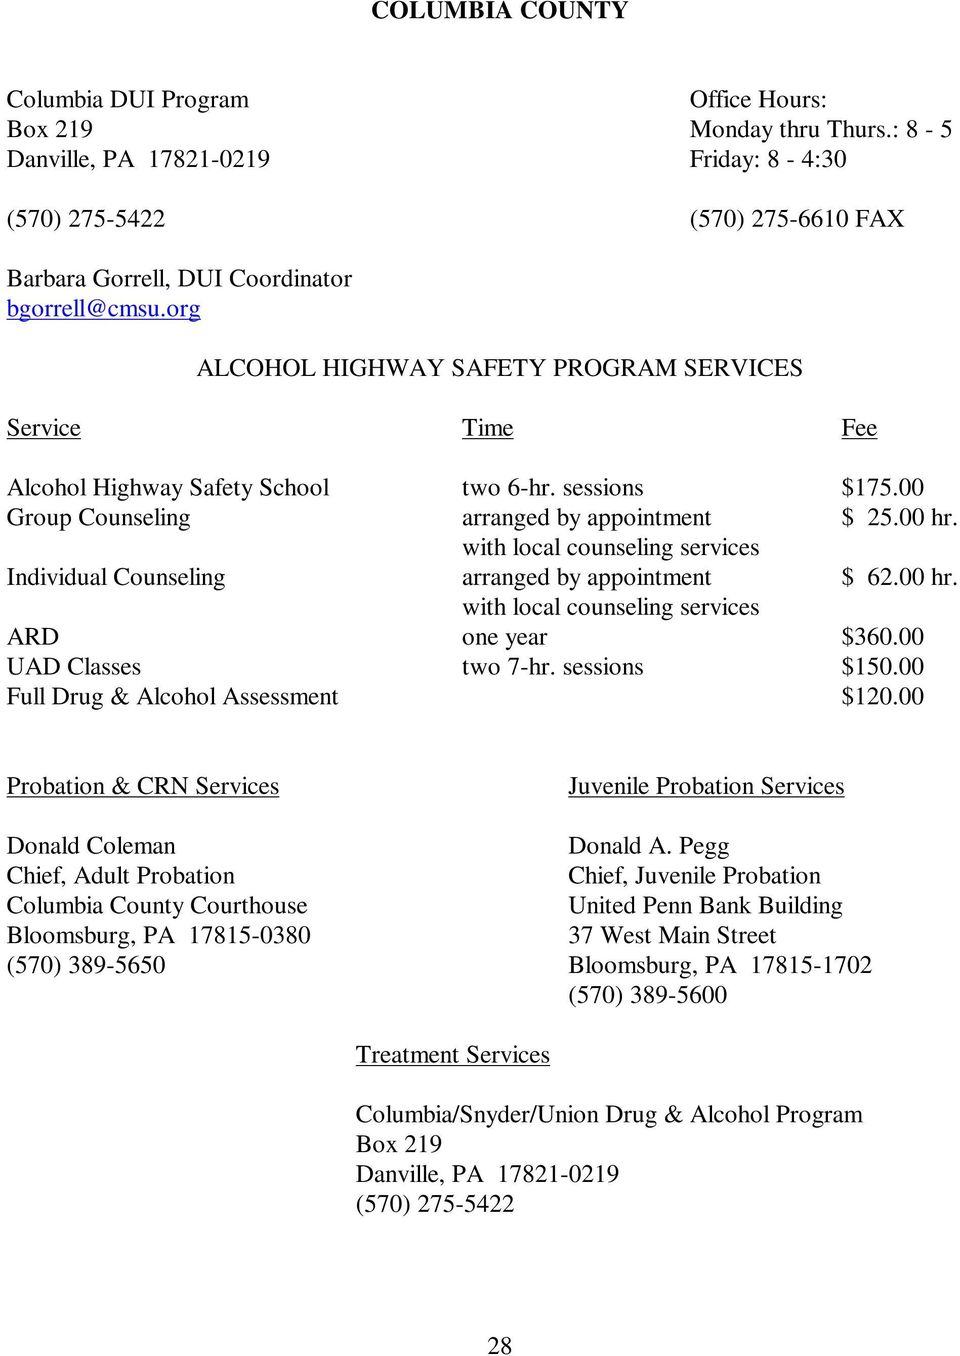 00 hr. with local counseling services ARD one year $360.00 UAD Classes two 7-hr. sessions $150.00 Full Drug & Alcohol Assessment $120.00 Probation & CRN Services Juvenile Donald Coleman Donald A.